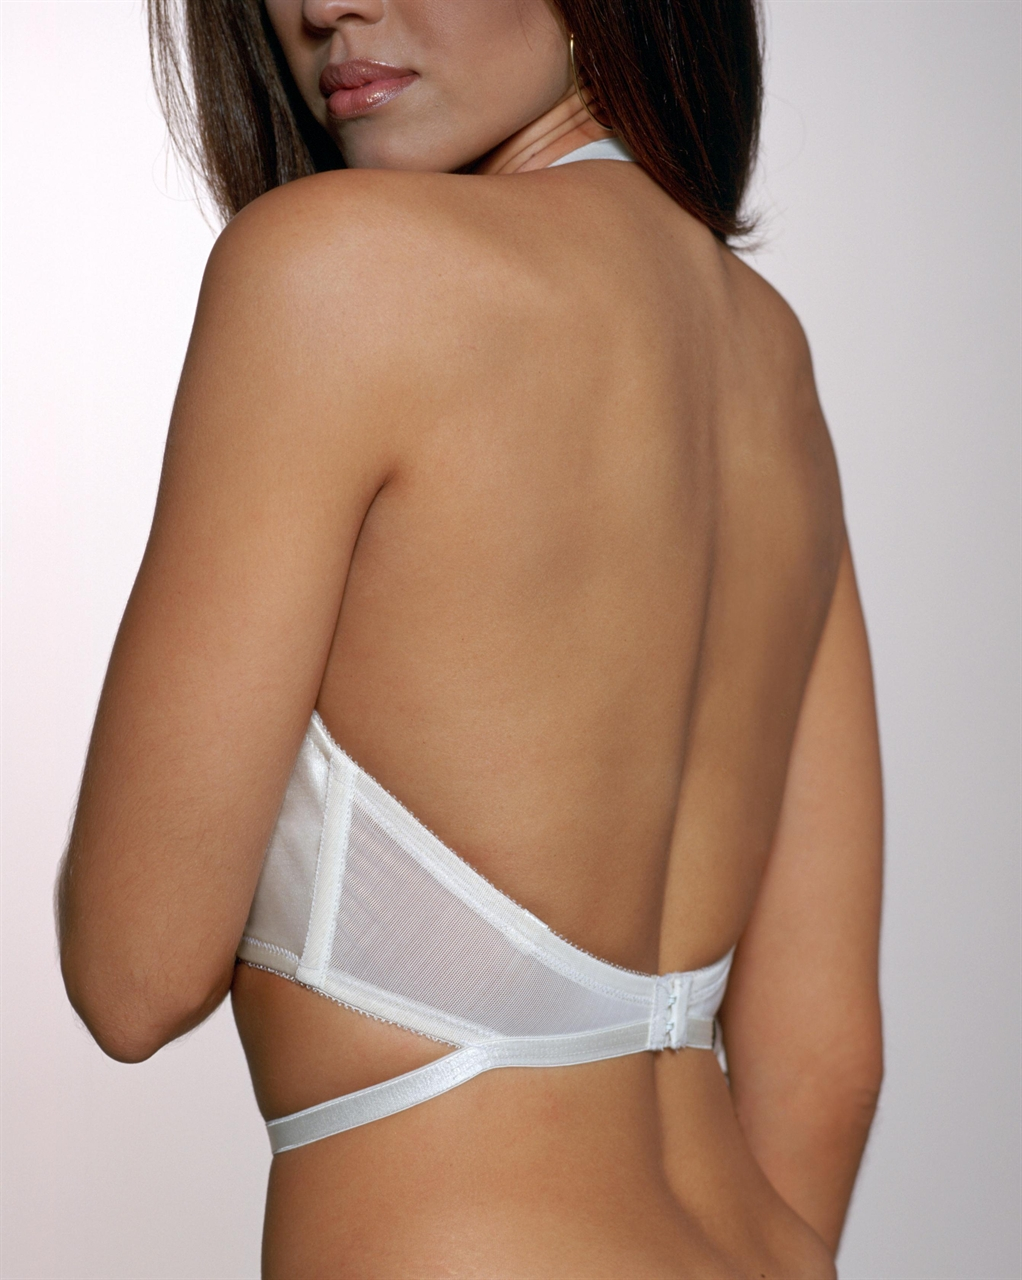 ... picture of smoothie #164 backless bra 80% off ZDEUUYU